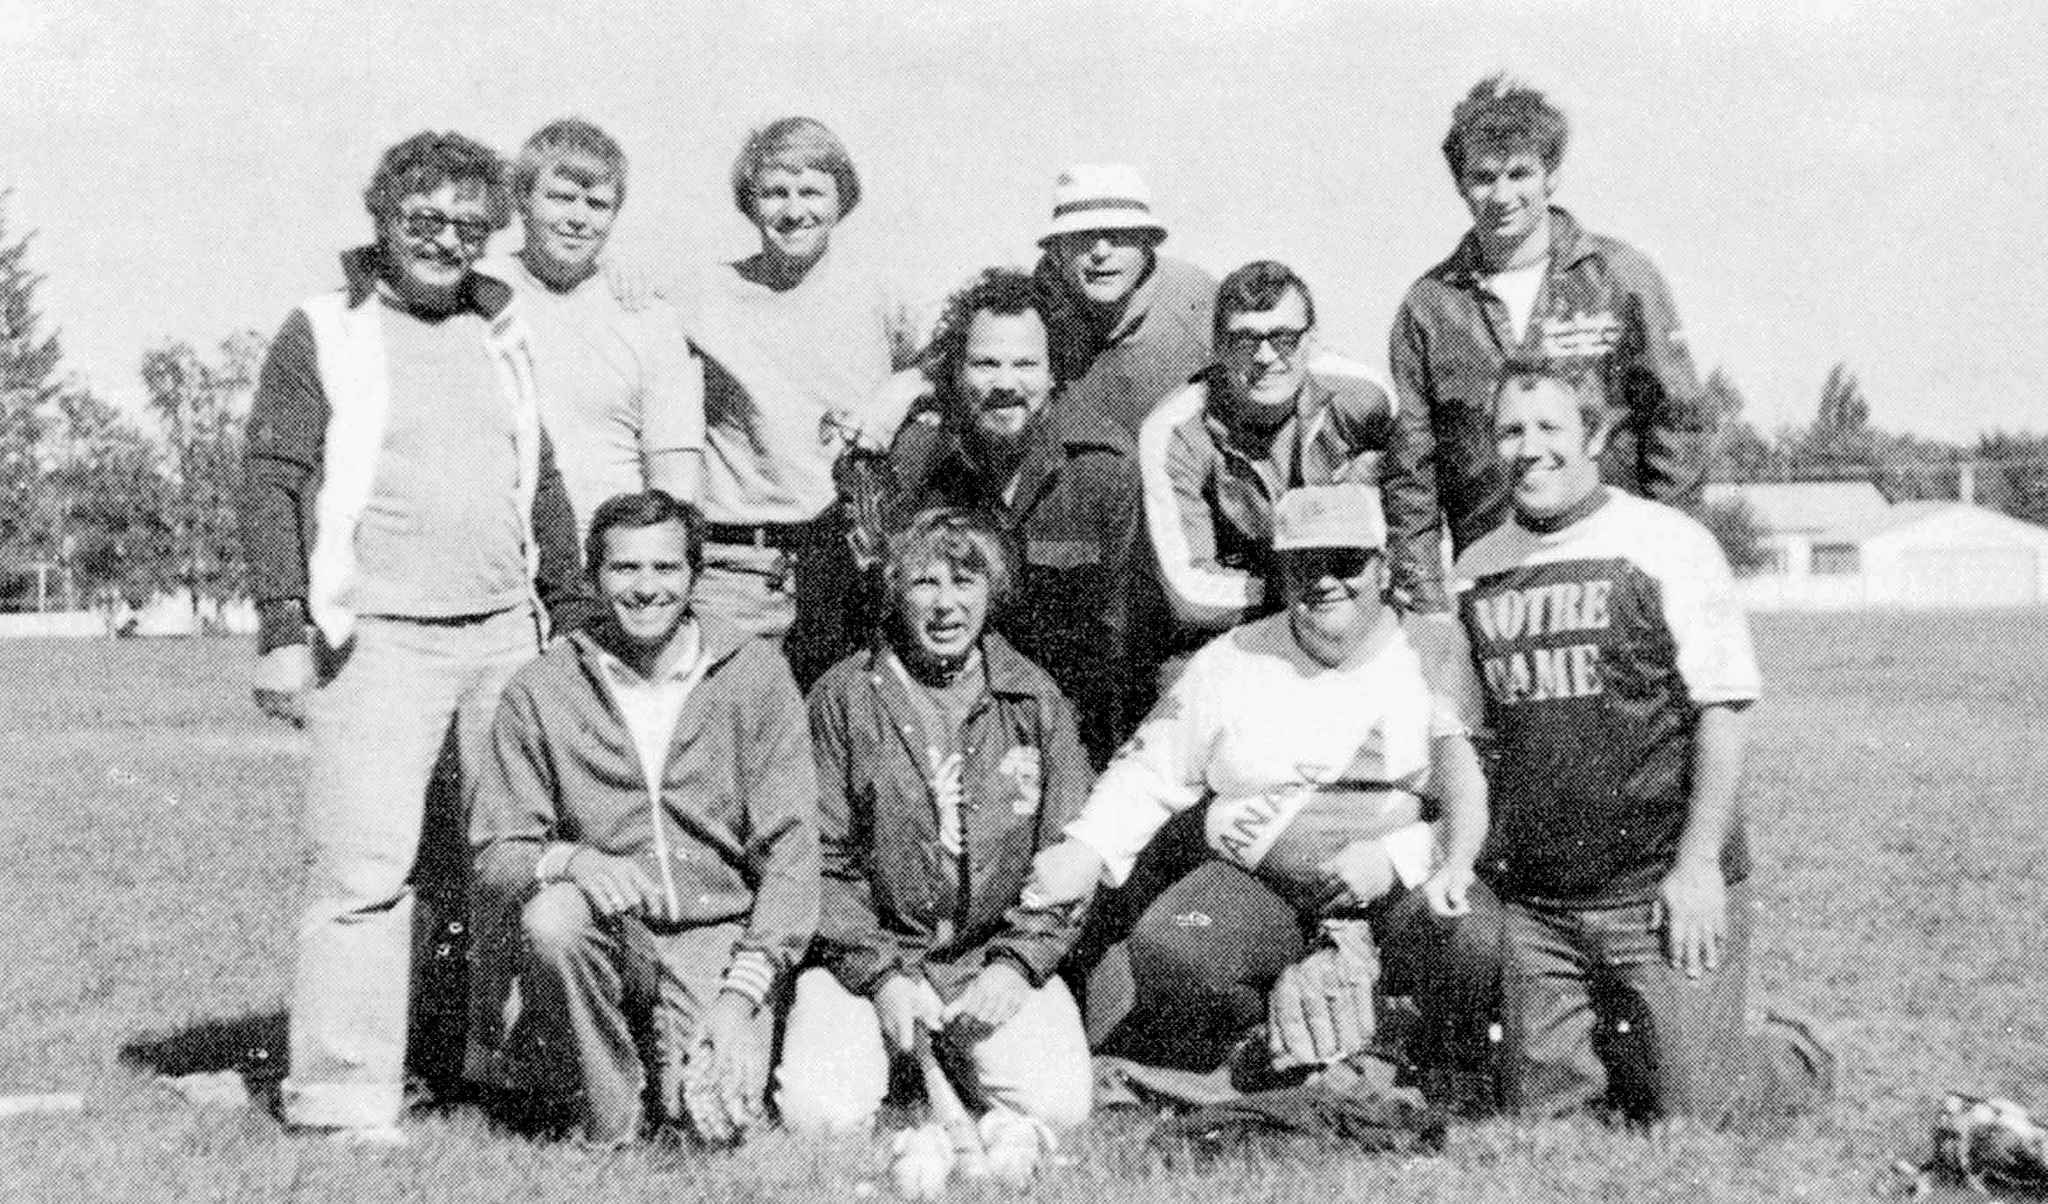 James (far right, back row) and Easton (far right, front row) played on a team from Silver Heights in 1977.